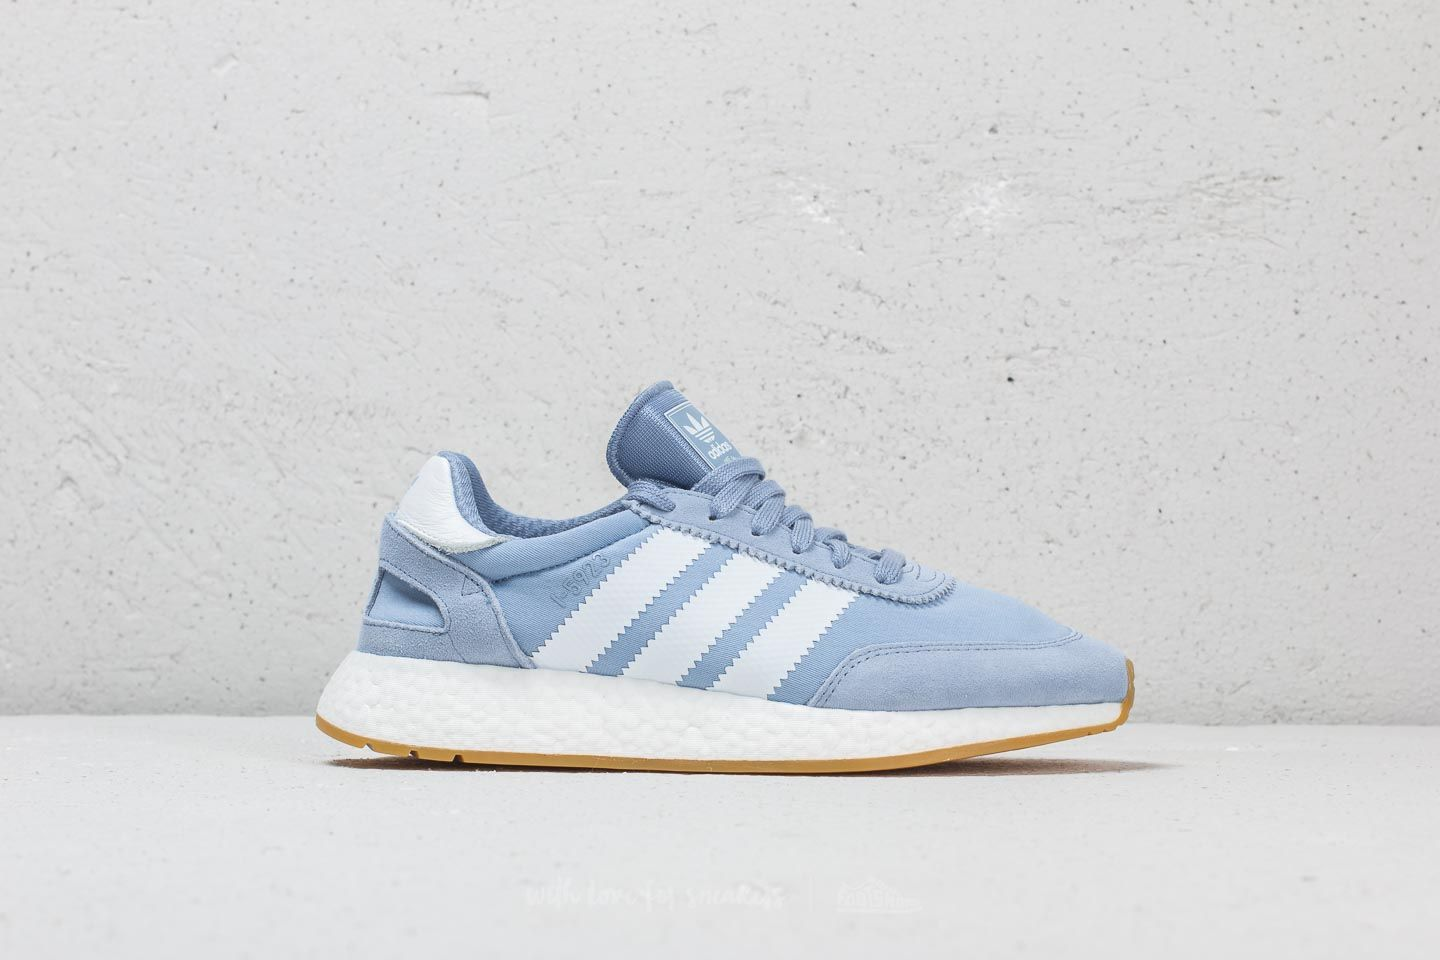 huge selection of f7e27 3b4a2 adidas I-5923 W Chalk Blue Ftw White Gum 3 at a great